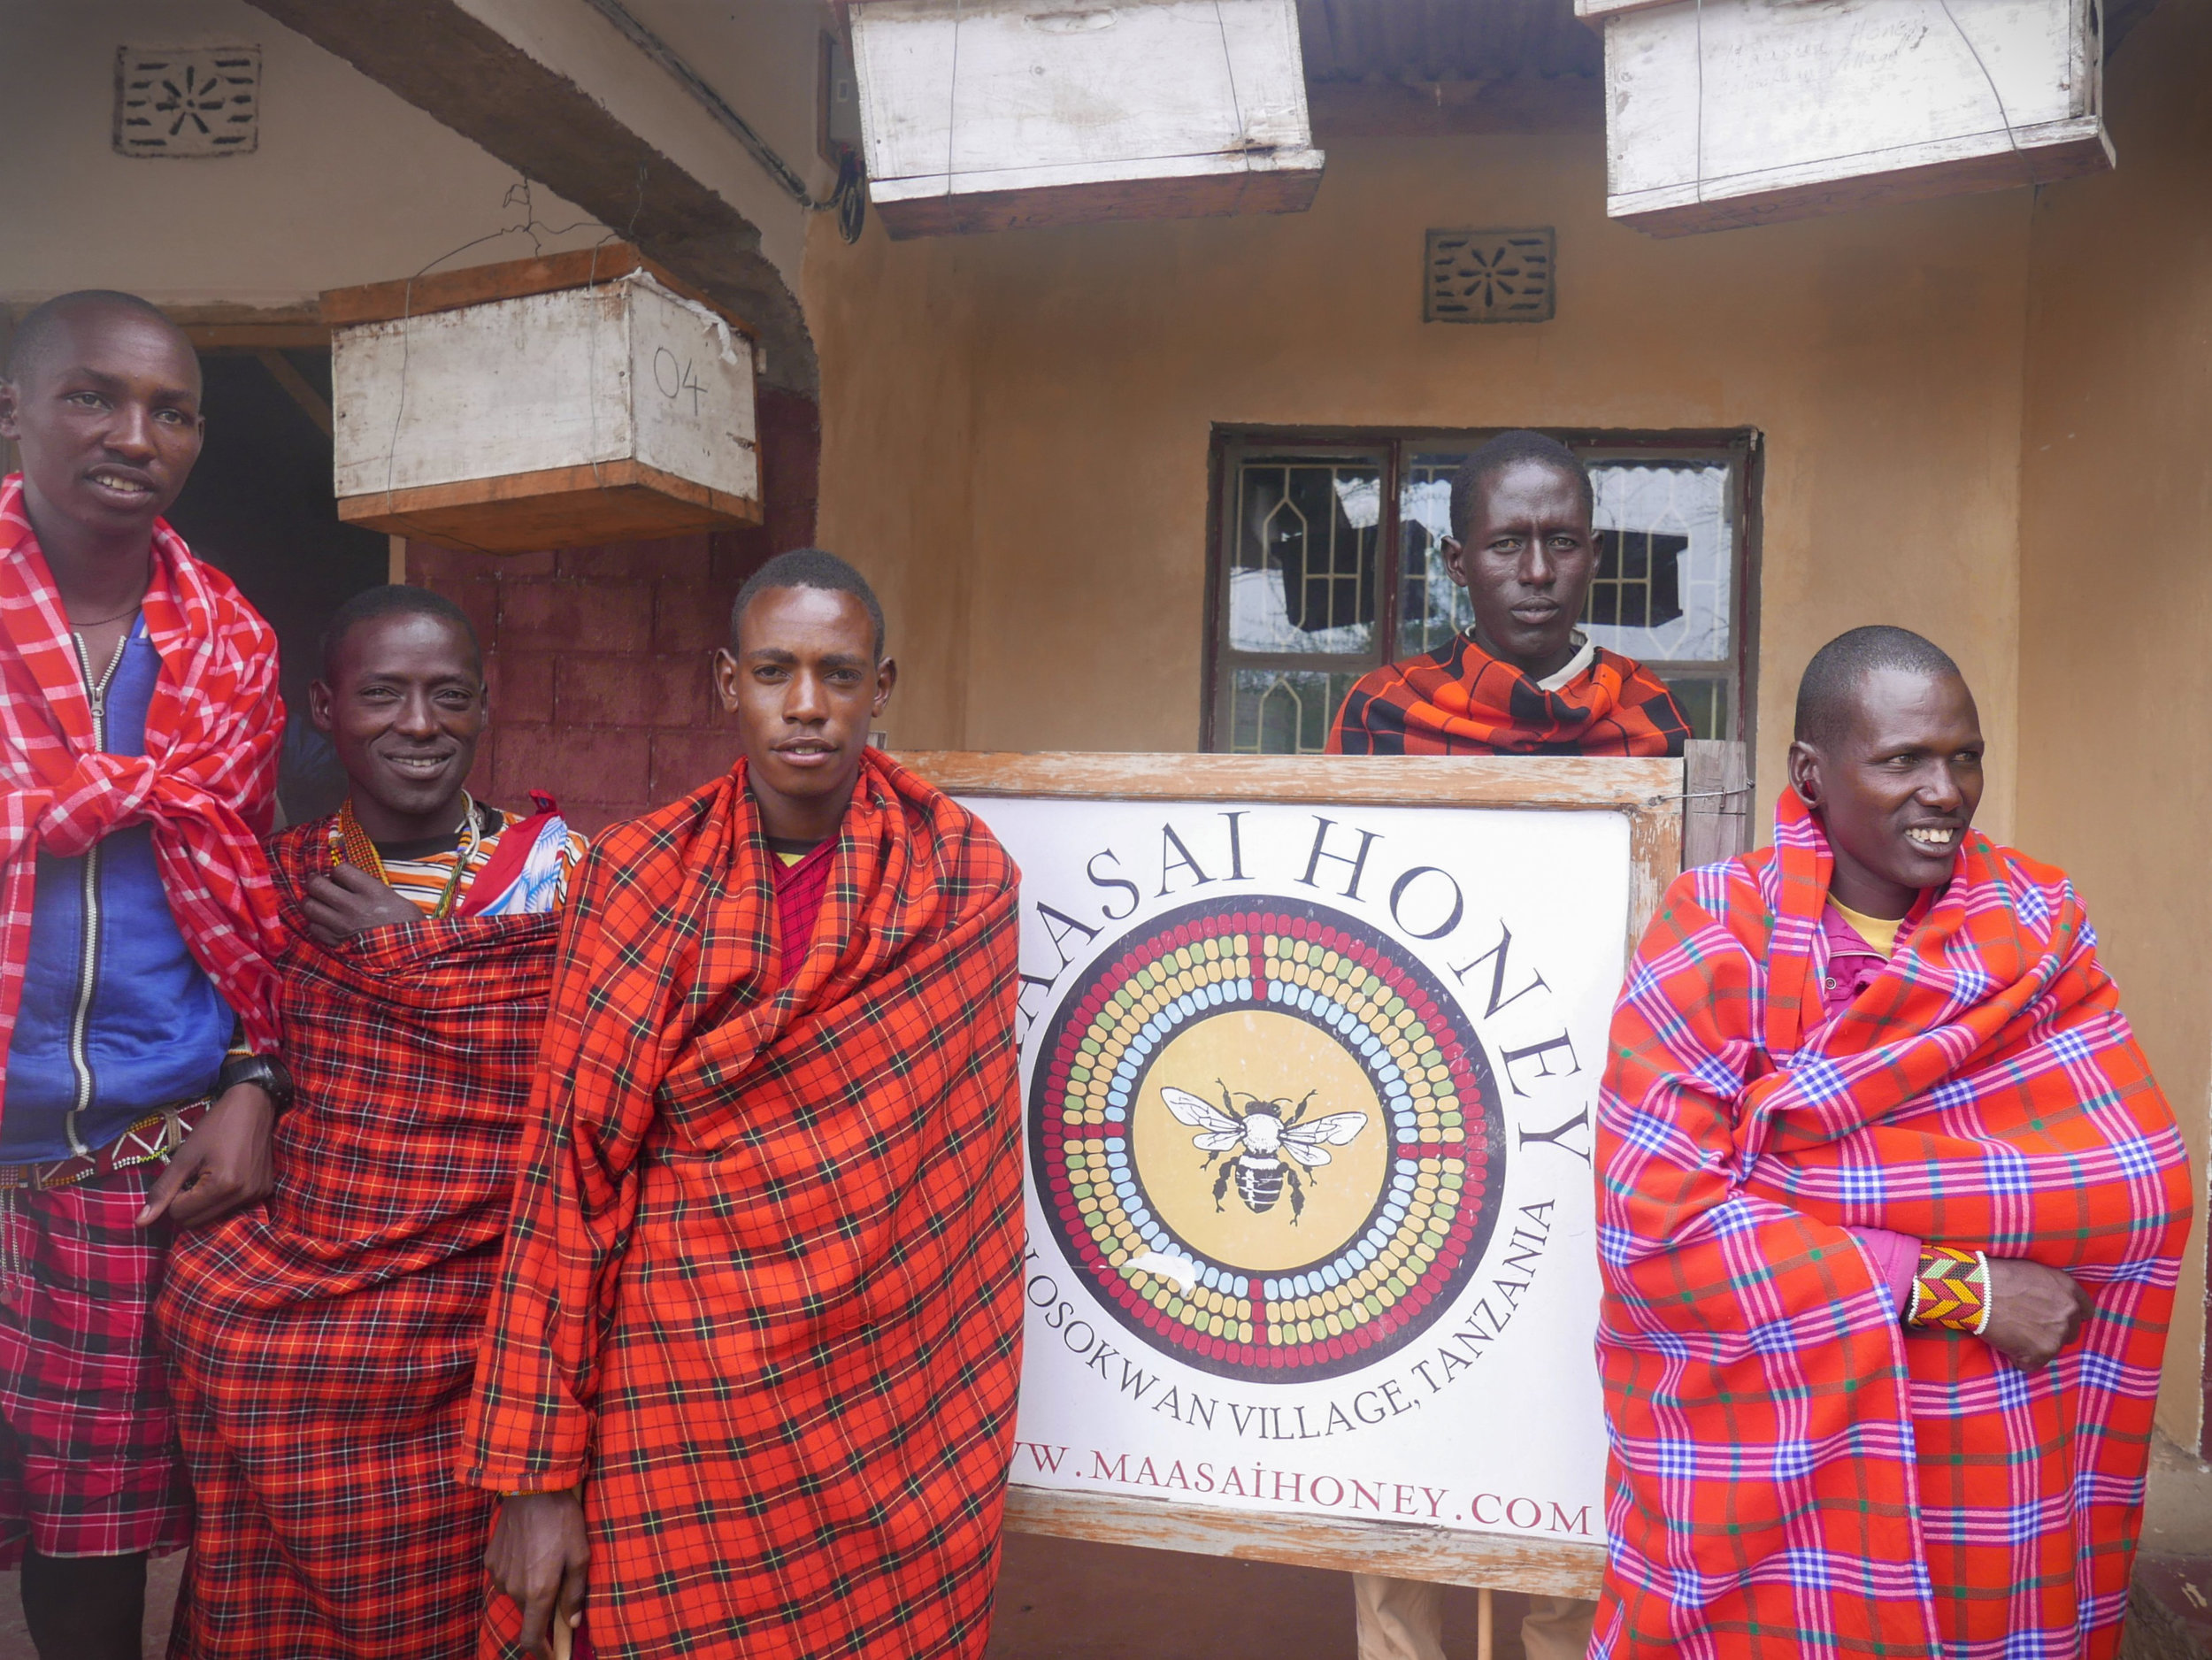 Maasai Honey apiary guards at our office where the stingless beehives are hung.